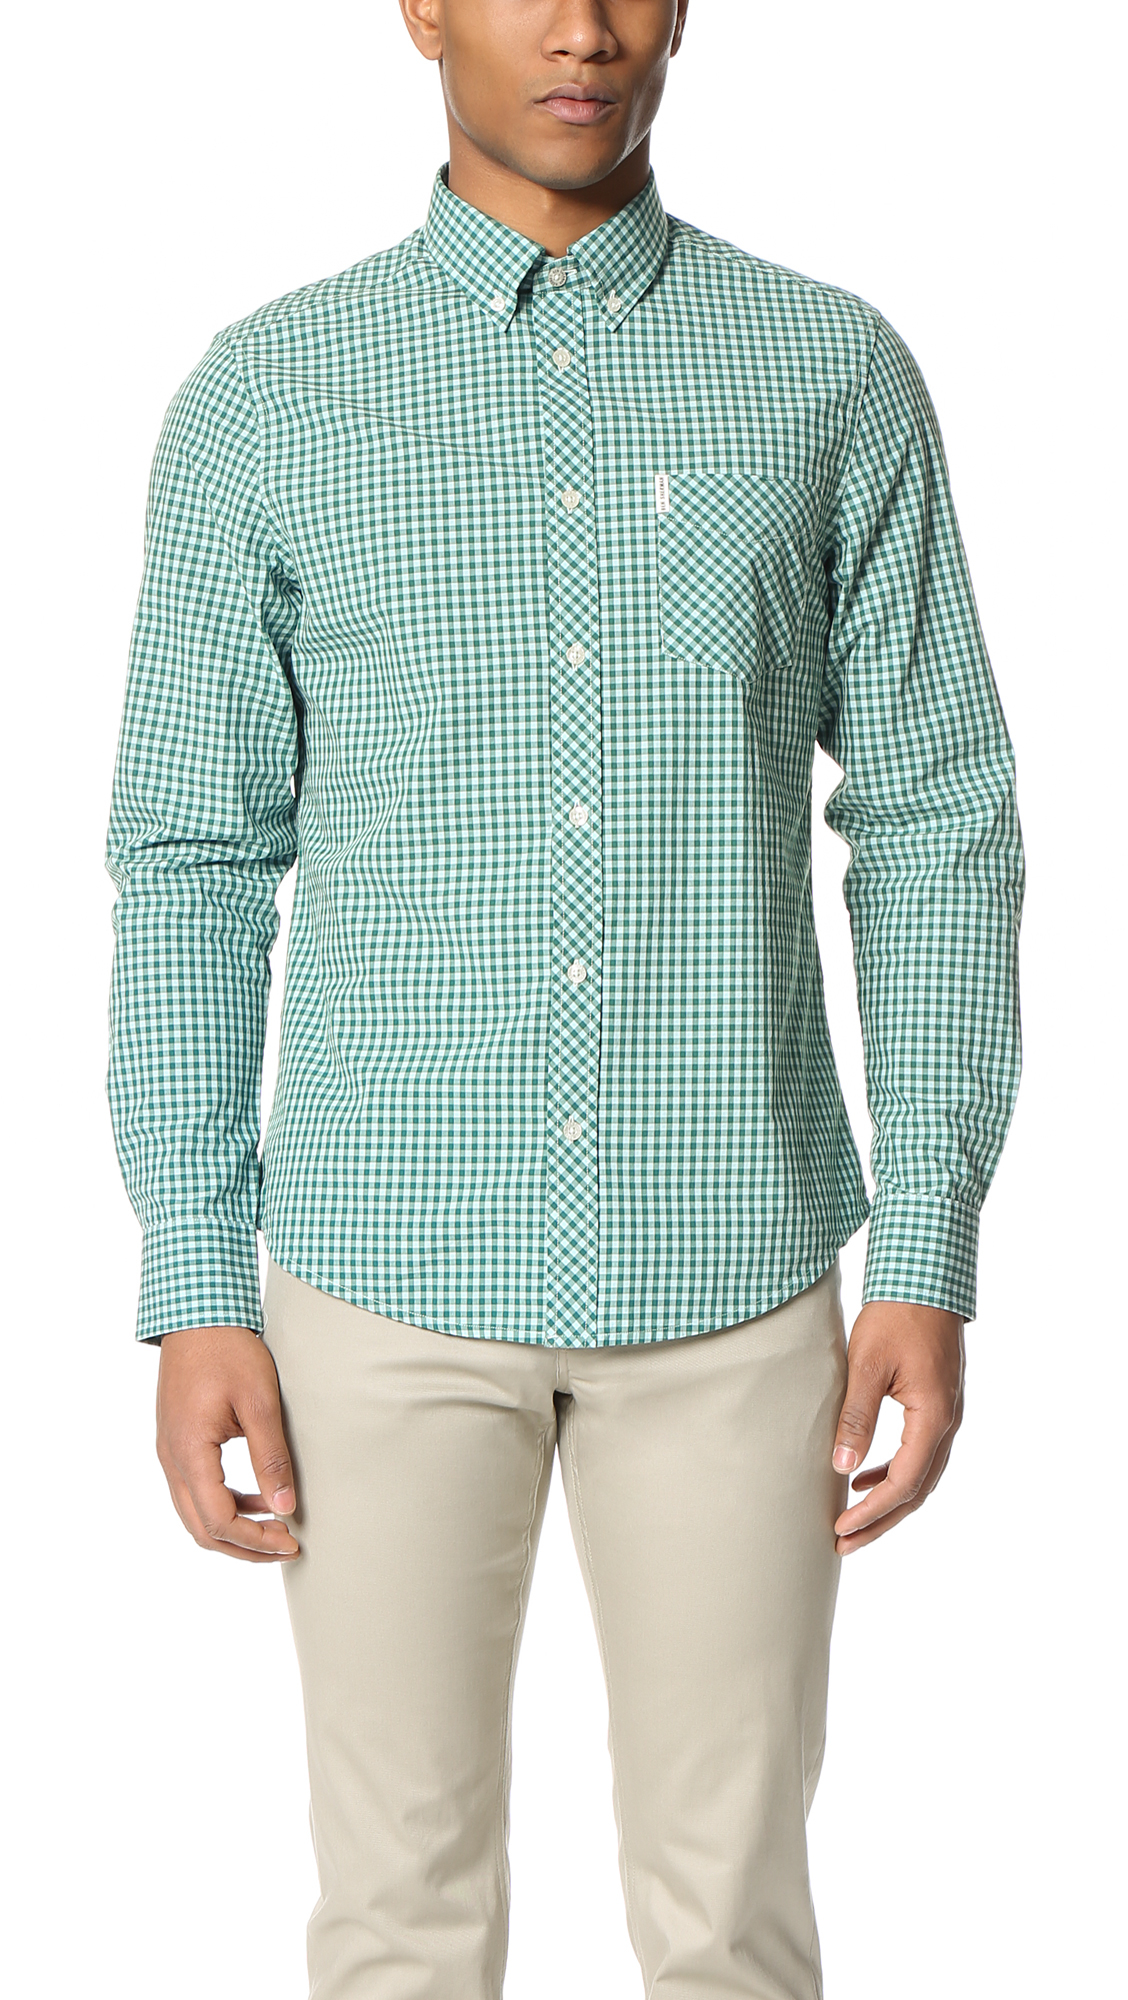 ben sherman gingham button down shirt in green for men lyst